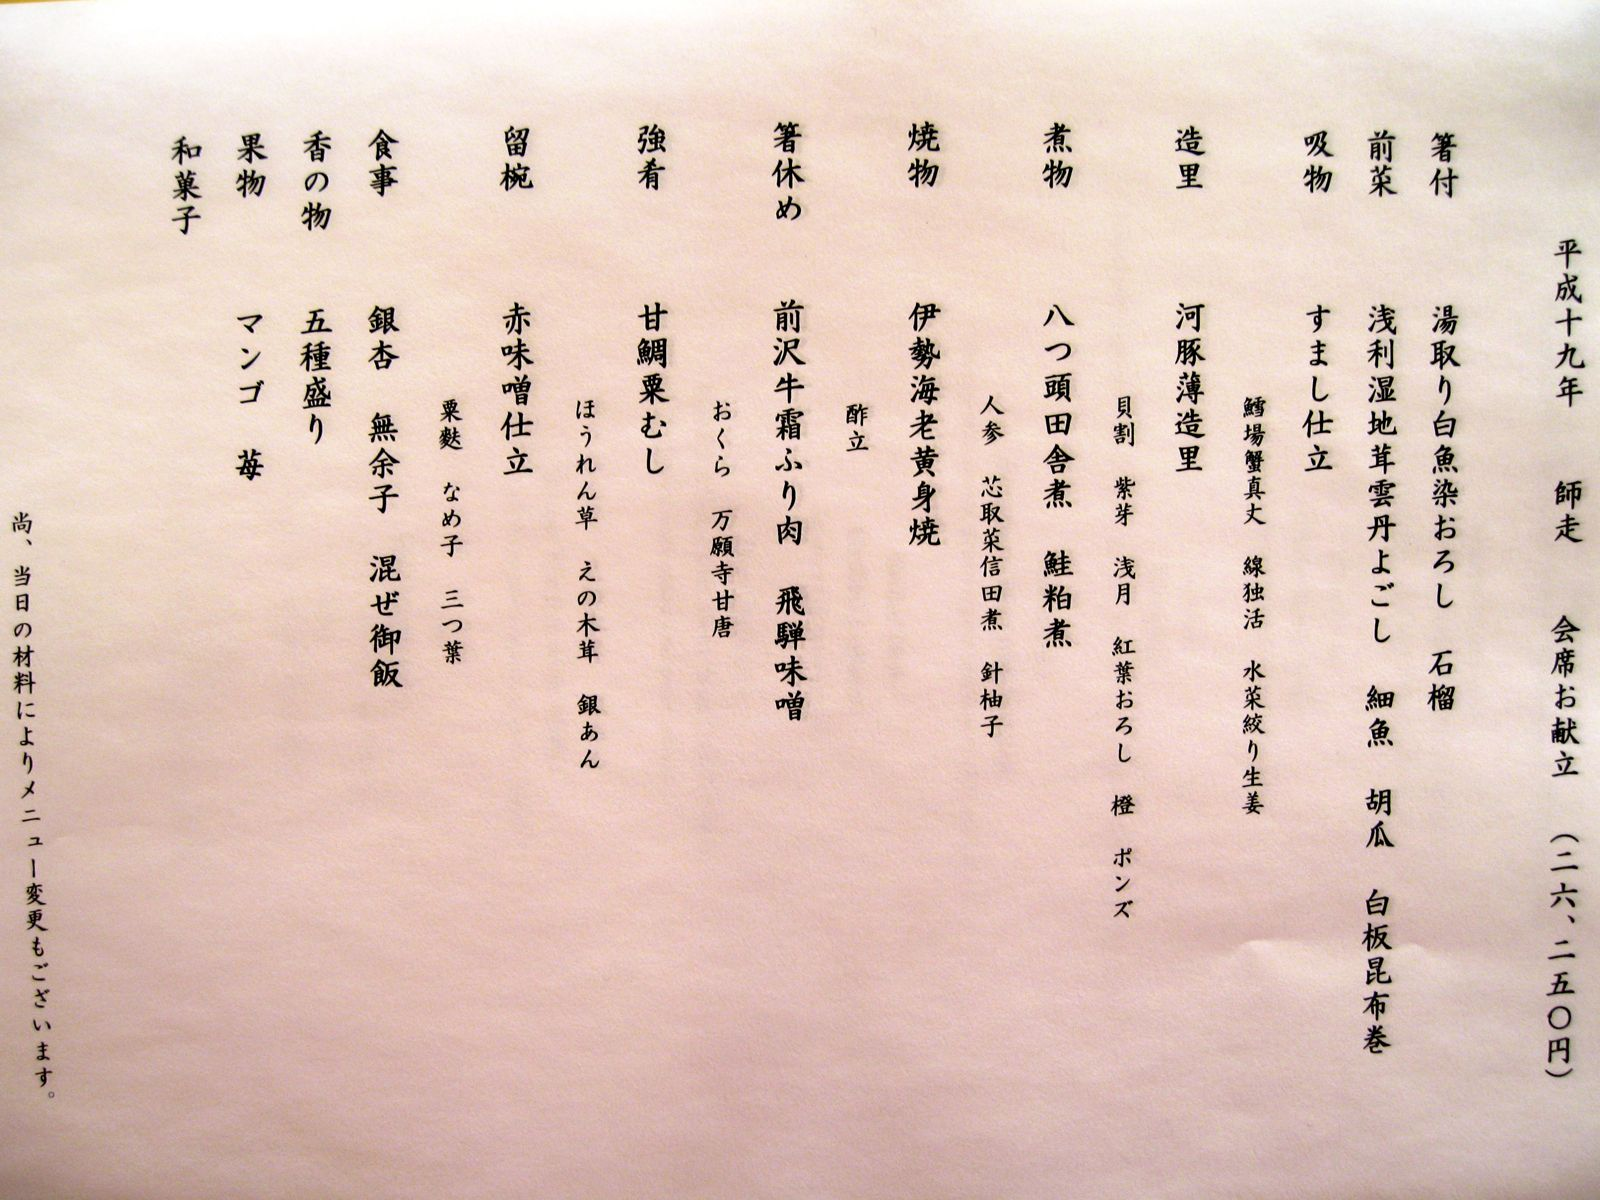 Menu for Jisaku Tsukiji